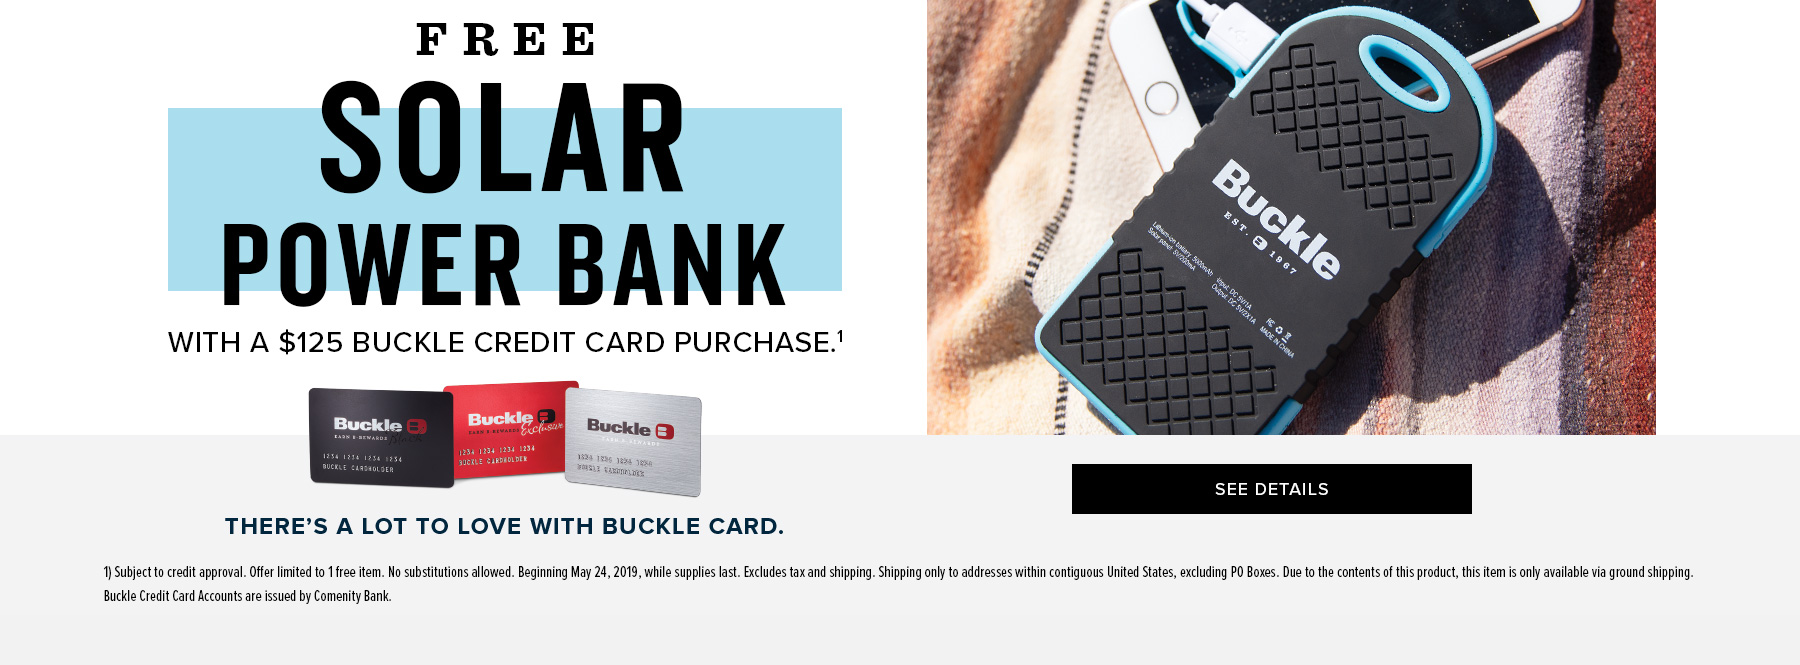 Free Solar Power Bank With $125 Buckle Credit Card Purchase. See Details.